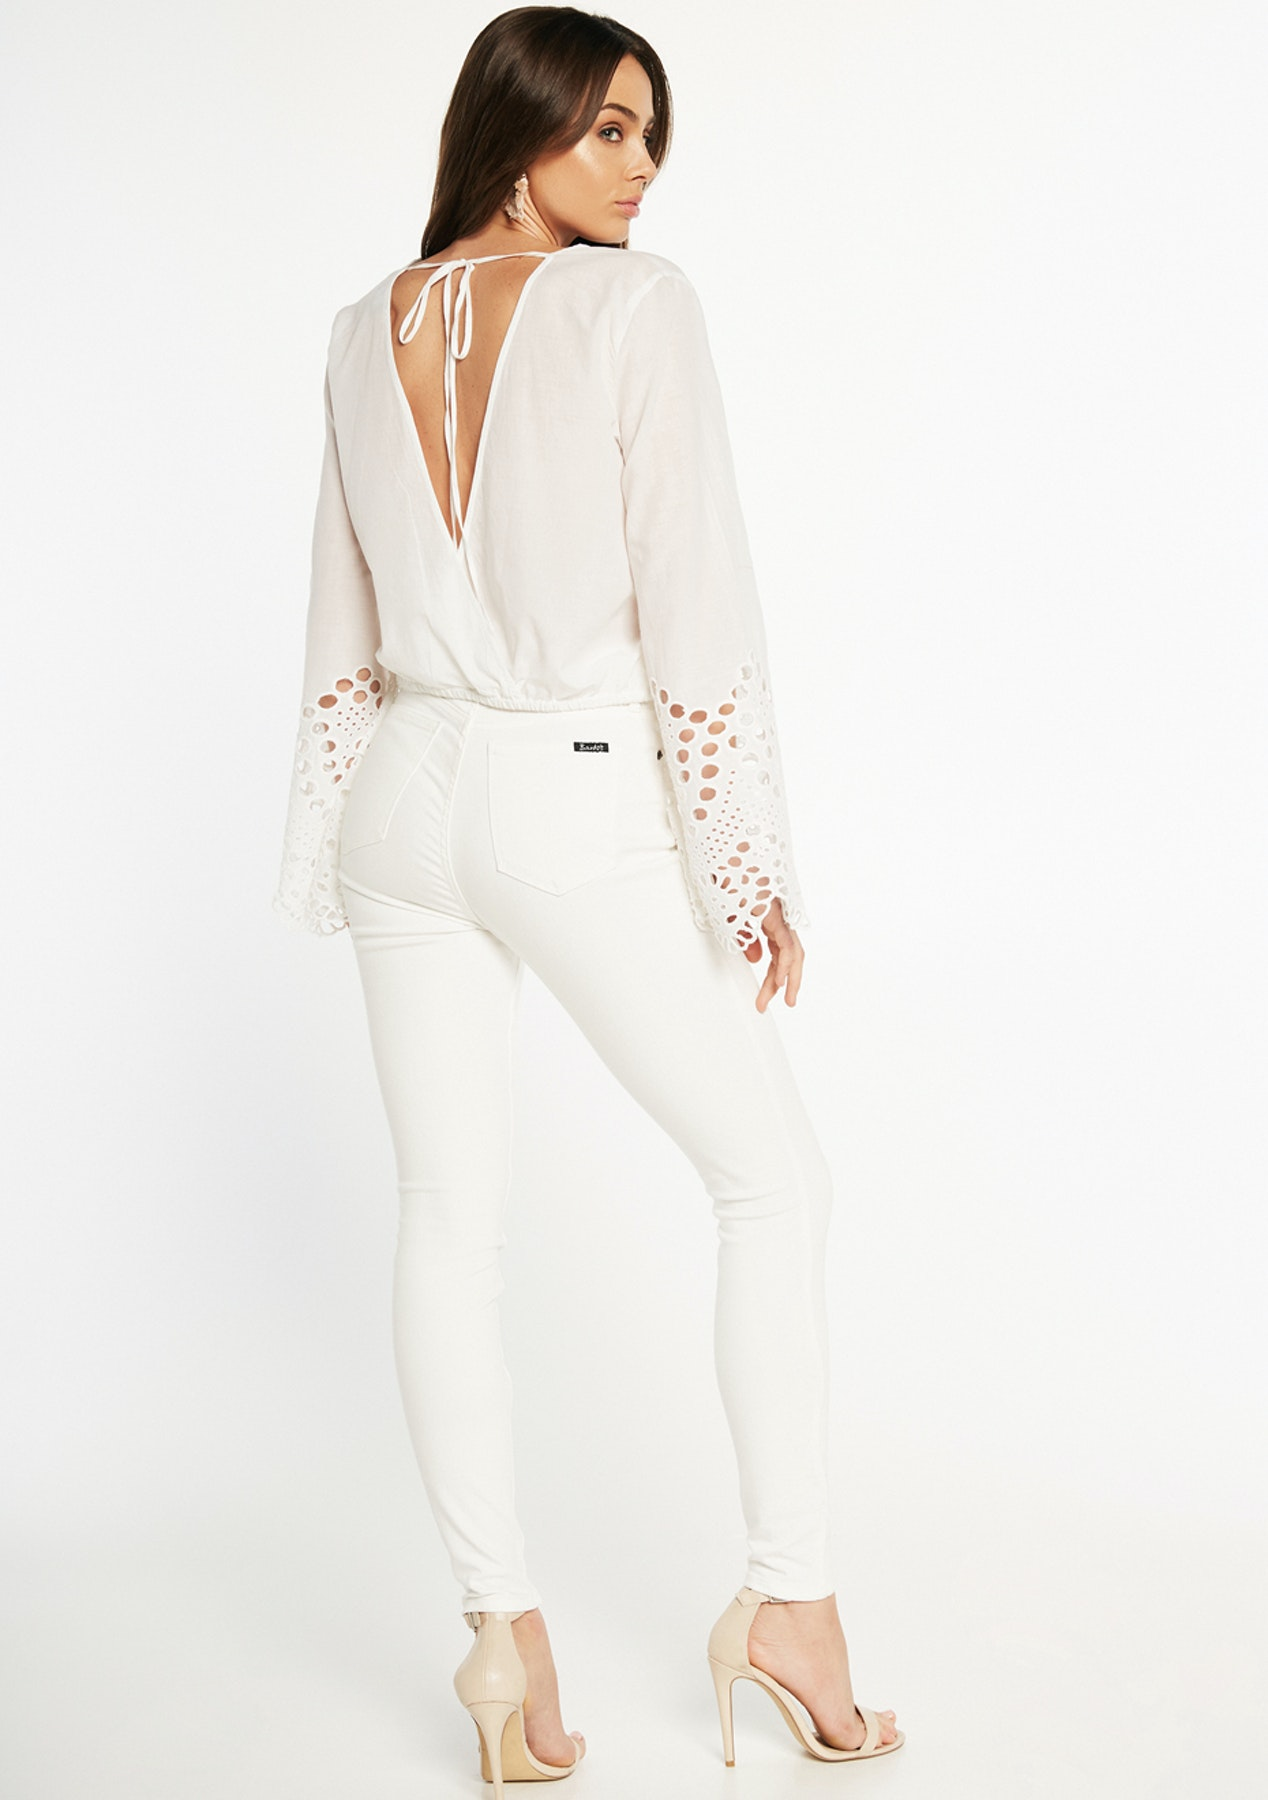 c89690e4b89048 Bardot - Daydreamer Wrap Top - Orchid Wh - Lioness and More Under  50 -  Onceit